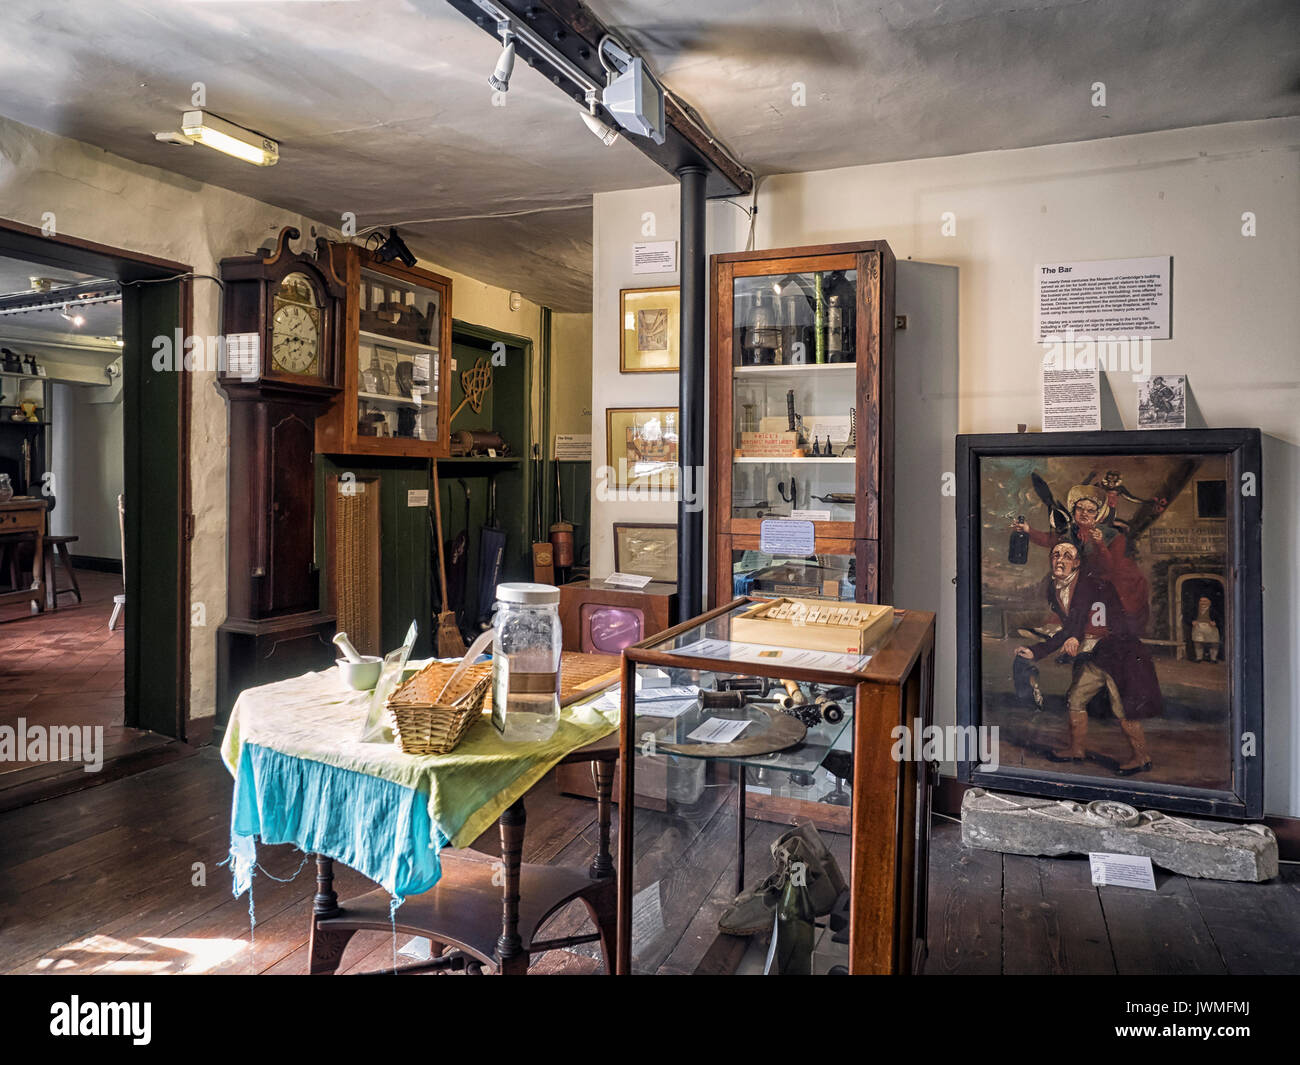 MUSEUM OF CAMBRIDGE - General view of the Snug in the Museum.  Photos taken with the approval of the the Museum. - Stock Image